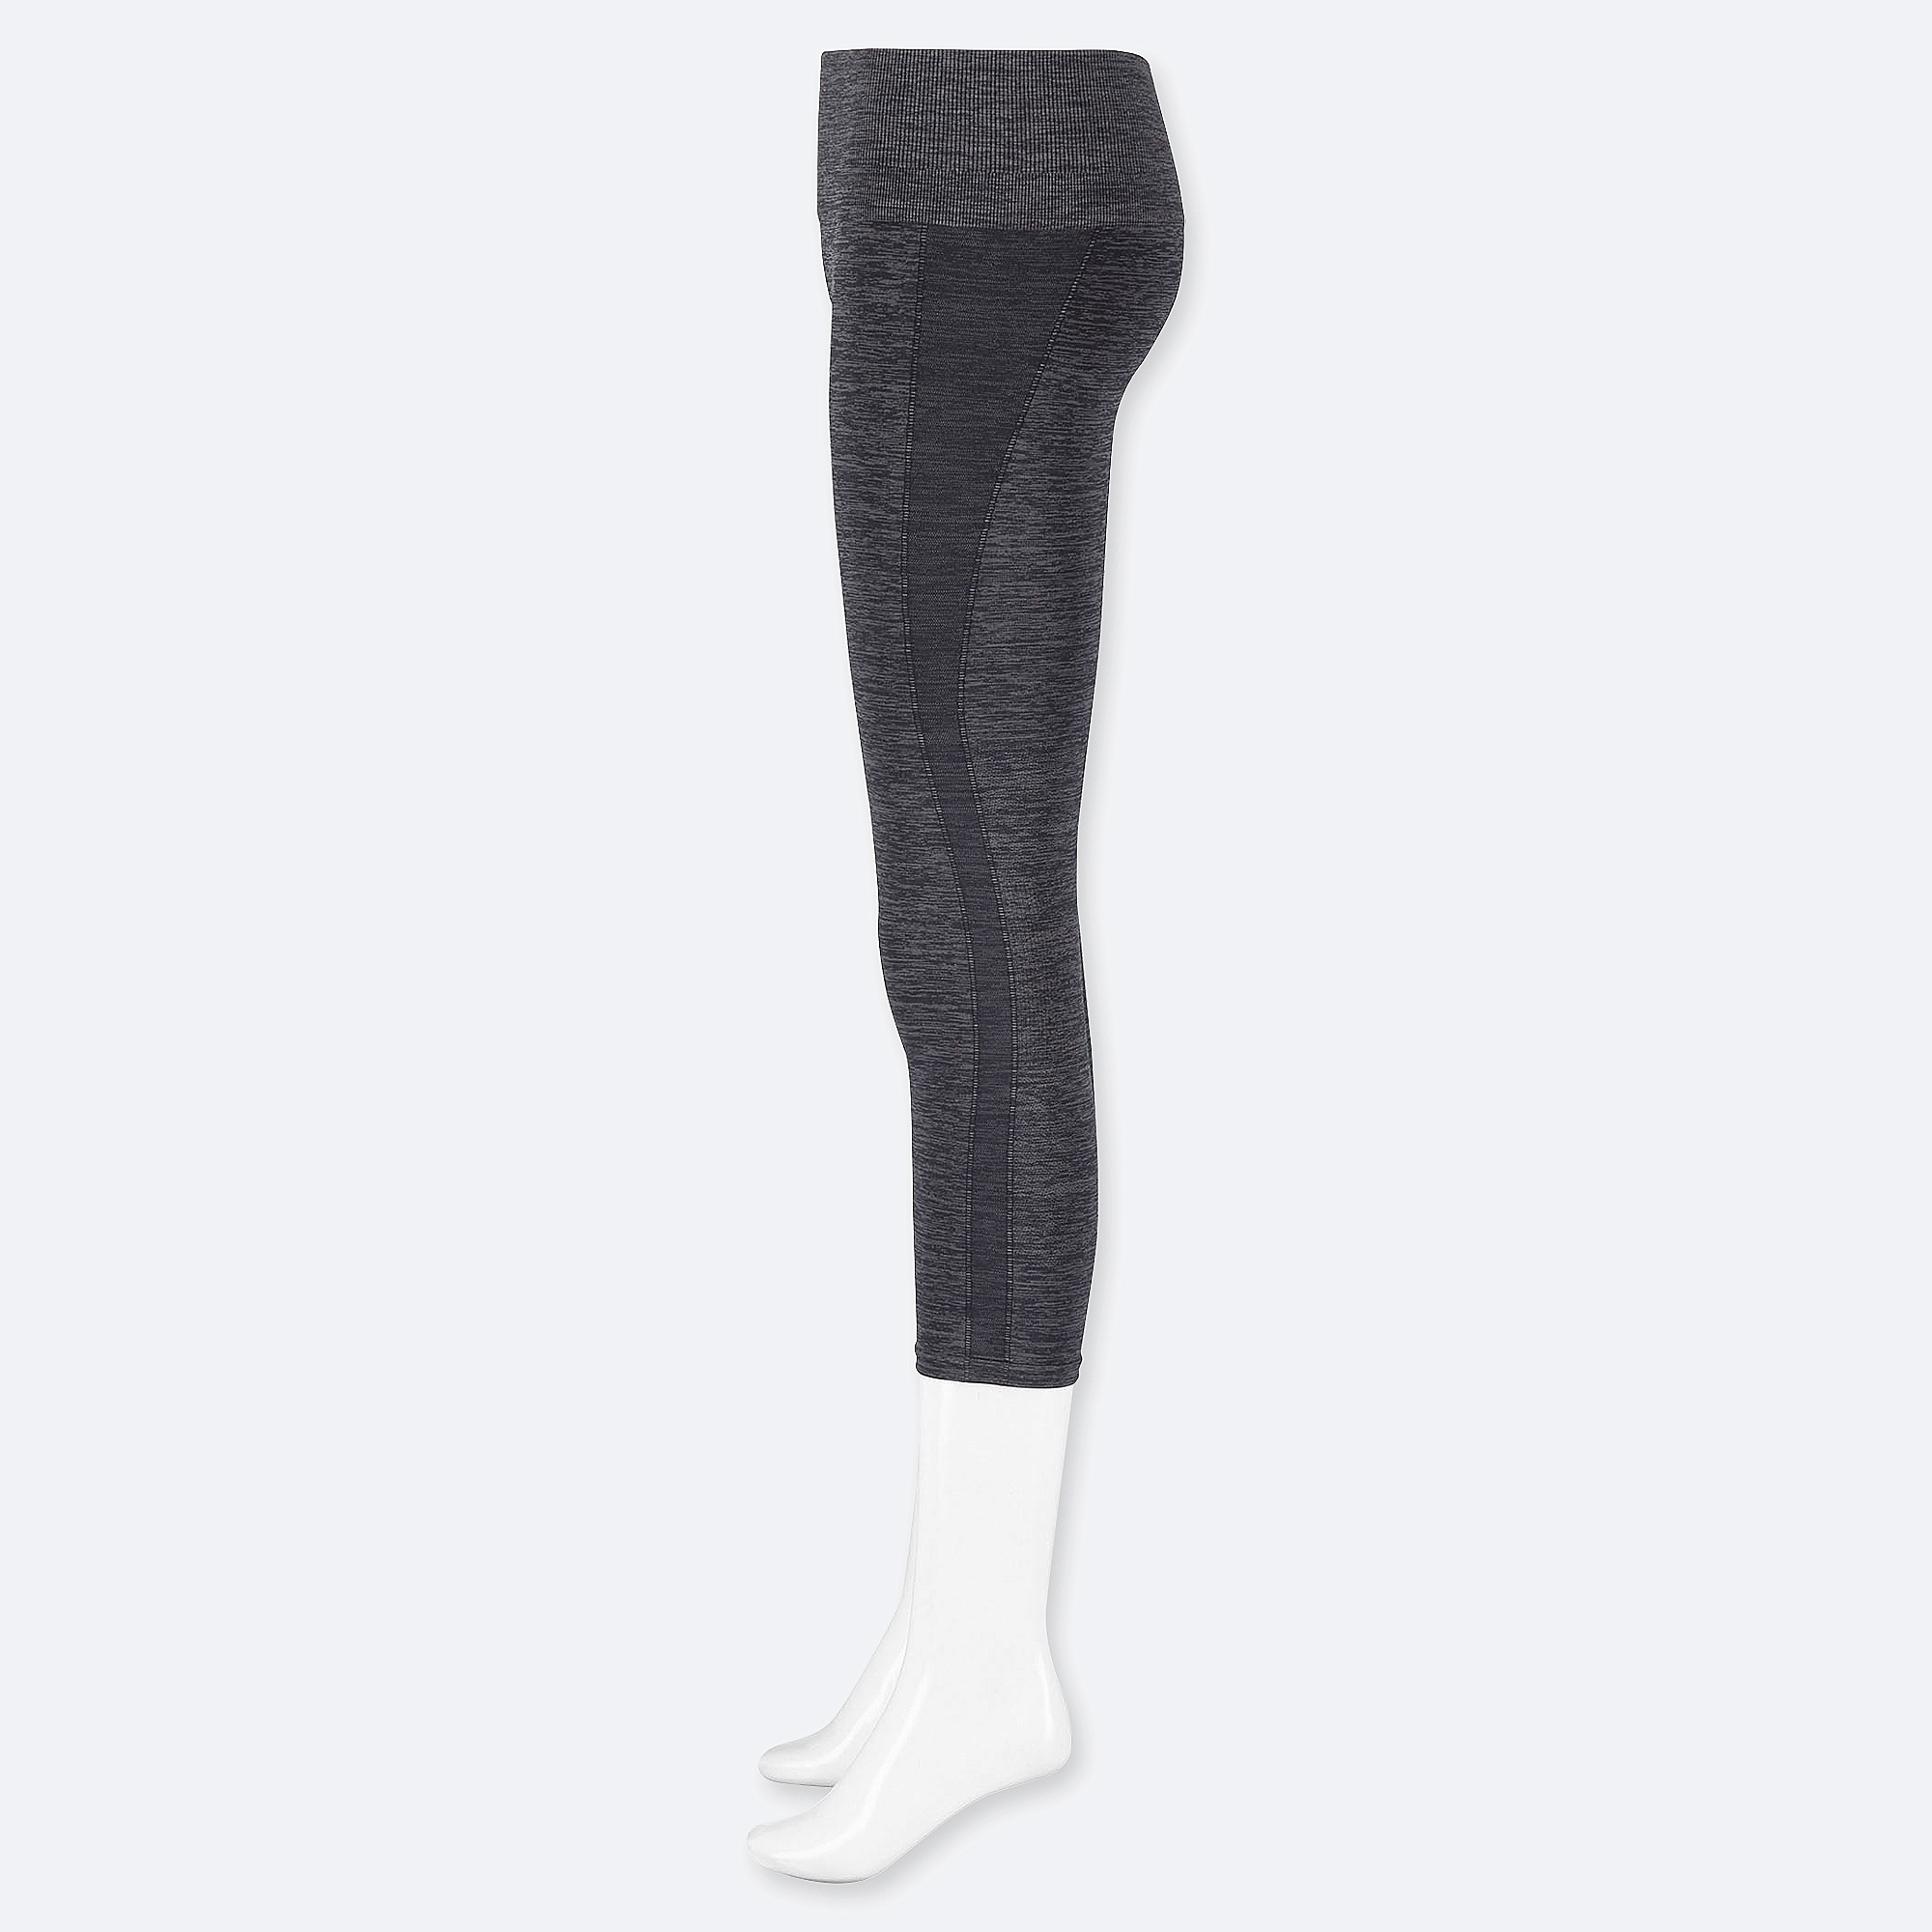 Uniqlo Airism Seamless Cropped Leggings At 19 9 Love The Brands